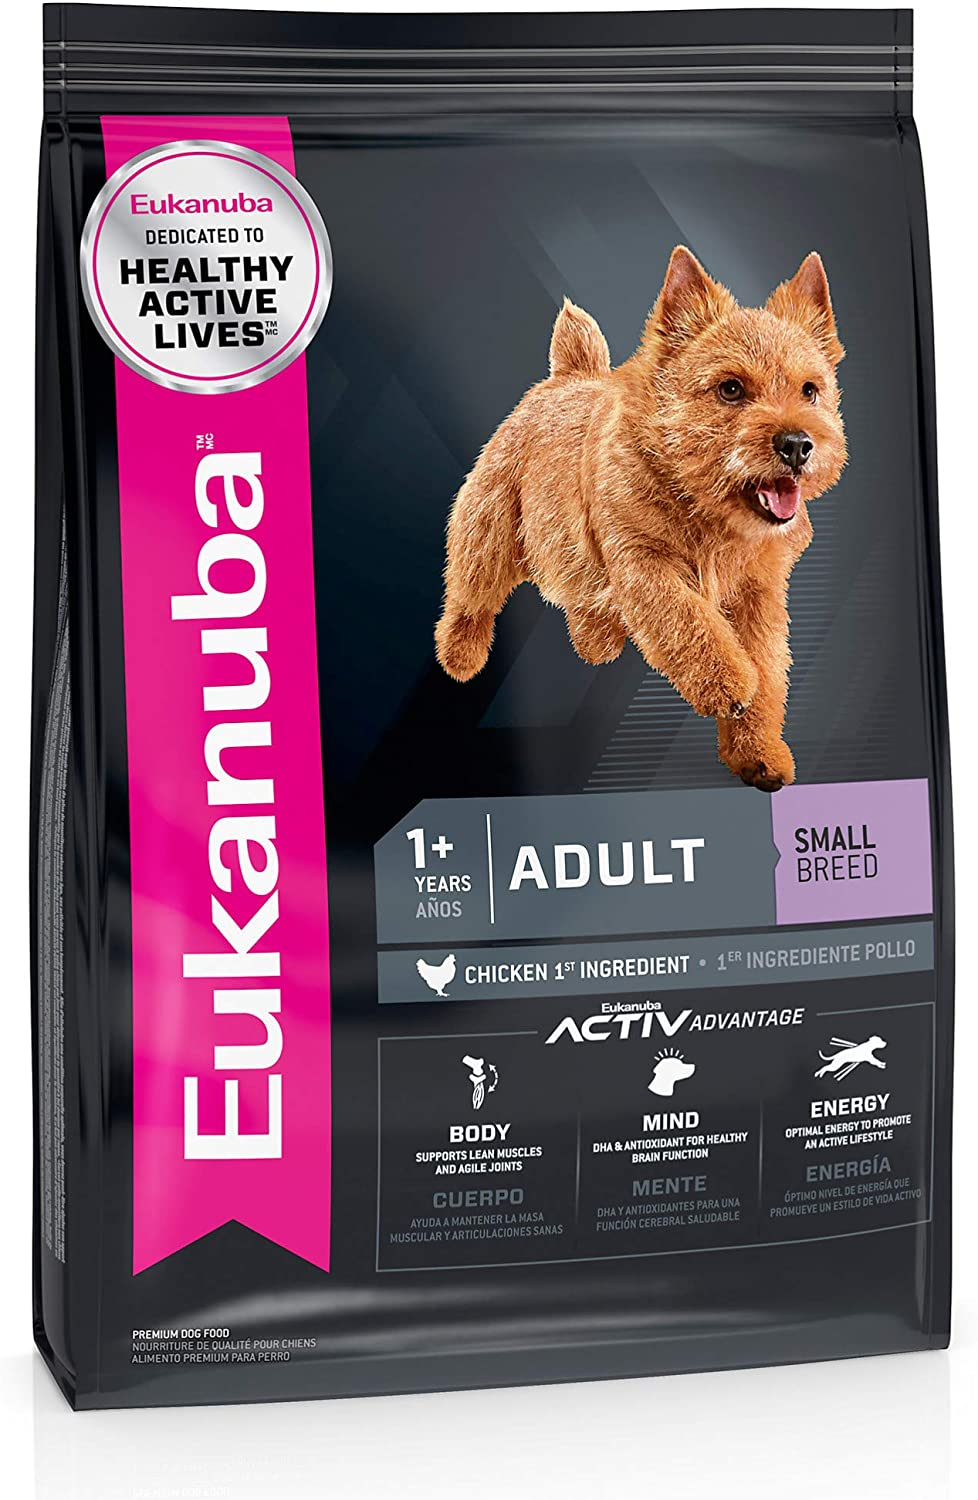 Eukanuba Adult Small Breed Dry Dog Food, 5 lb. bag